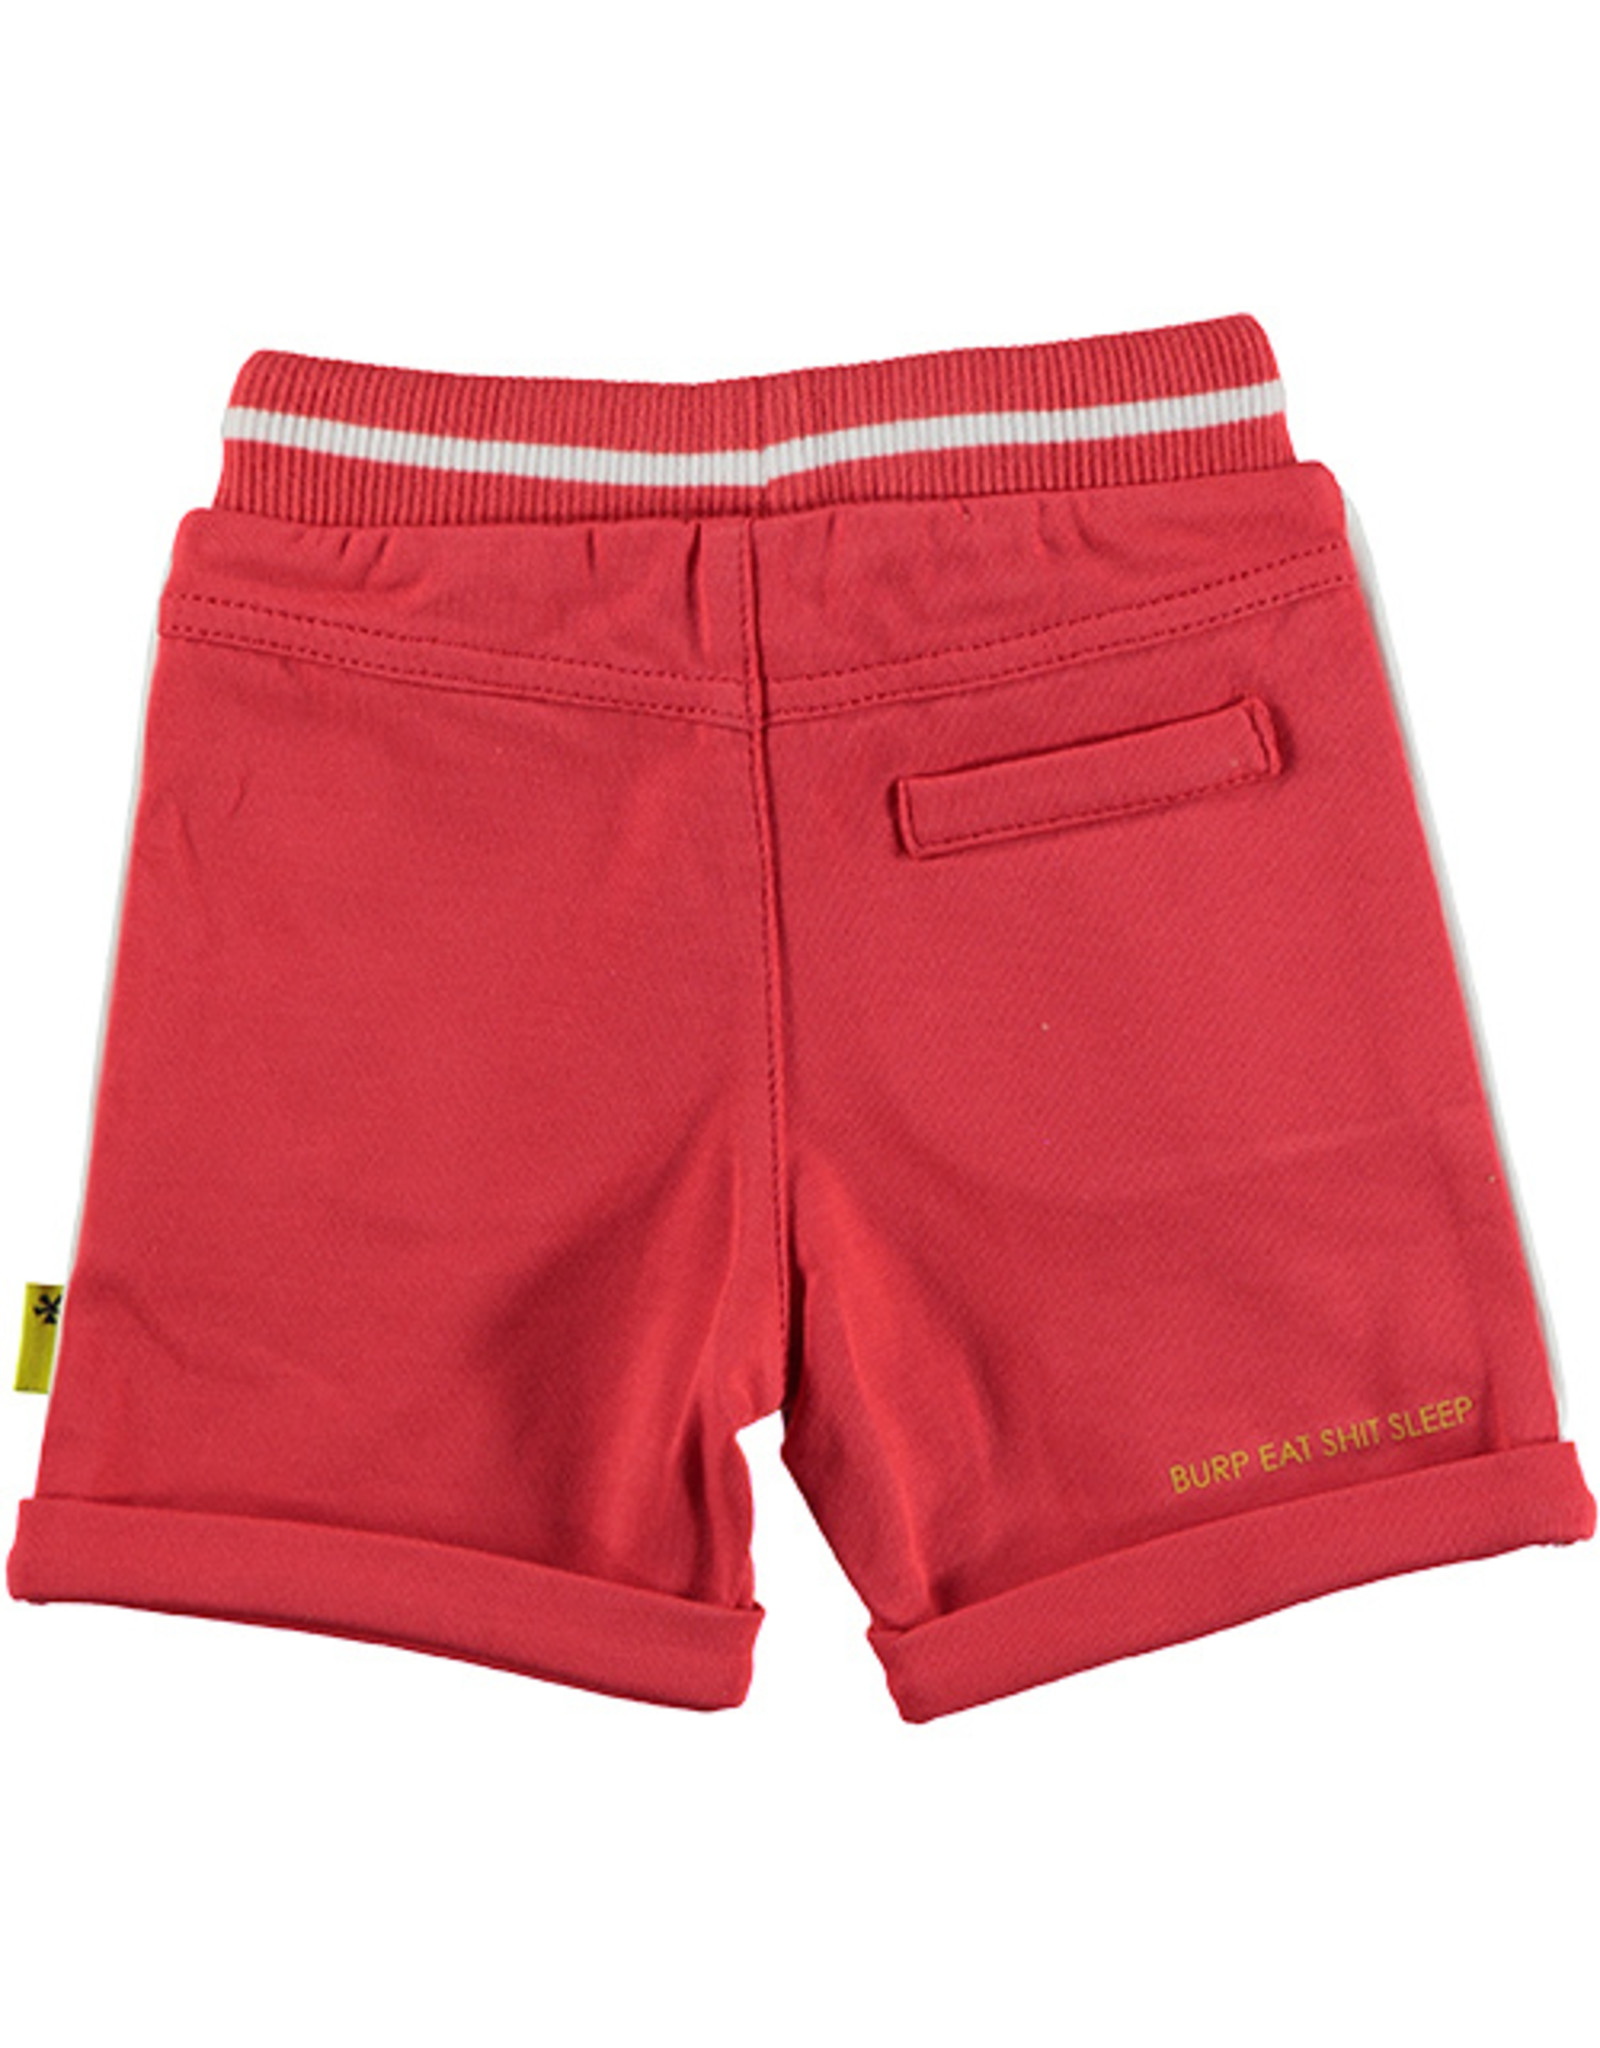 B.E.S.S. Shorts Uni with Piping, Red